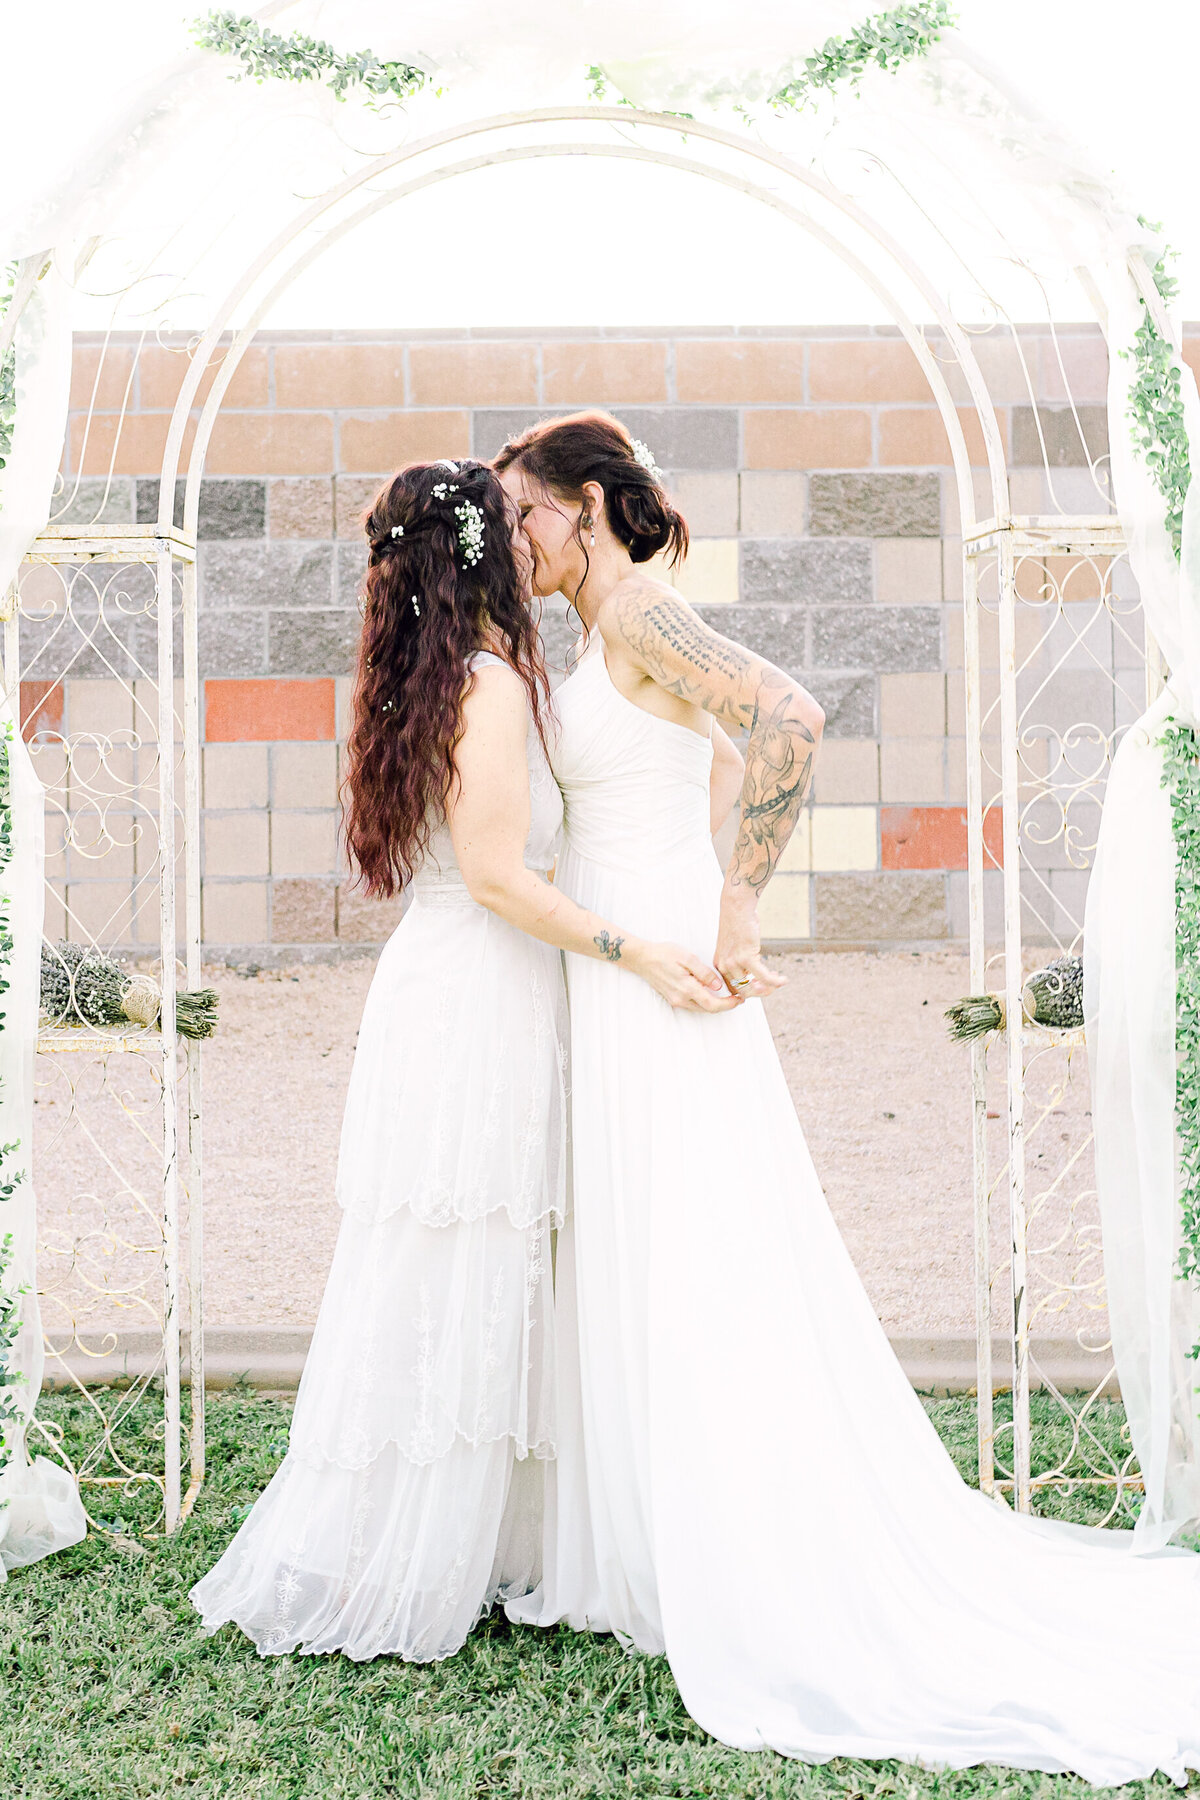 Lesbian Wedding - Phoenix Wedding Photographer - Atlas Rose Photography AZ01